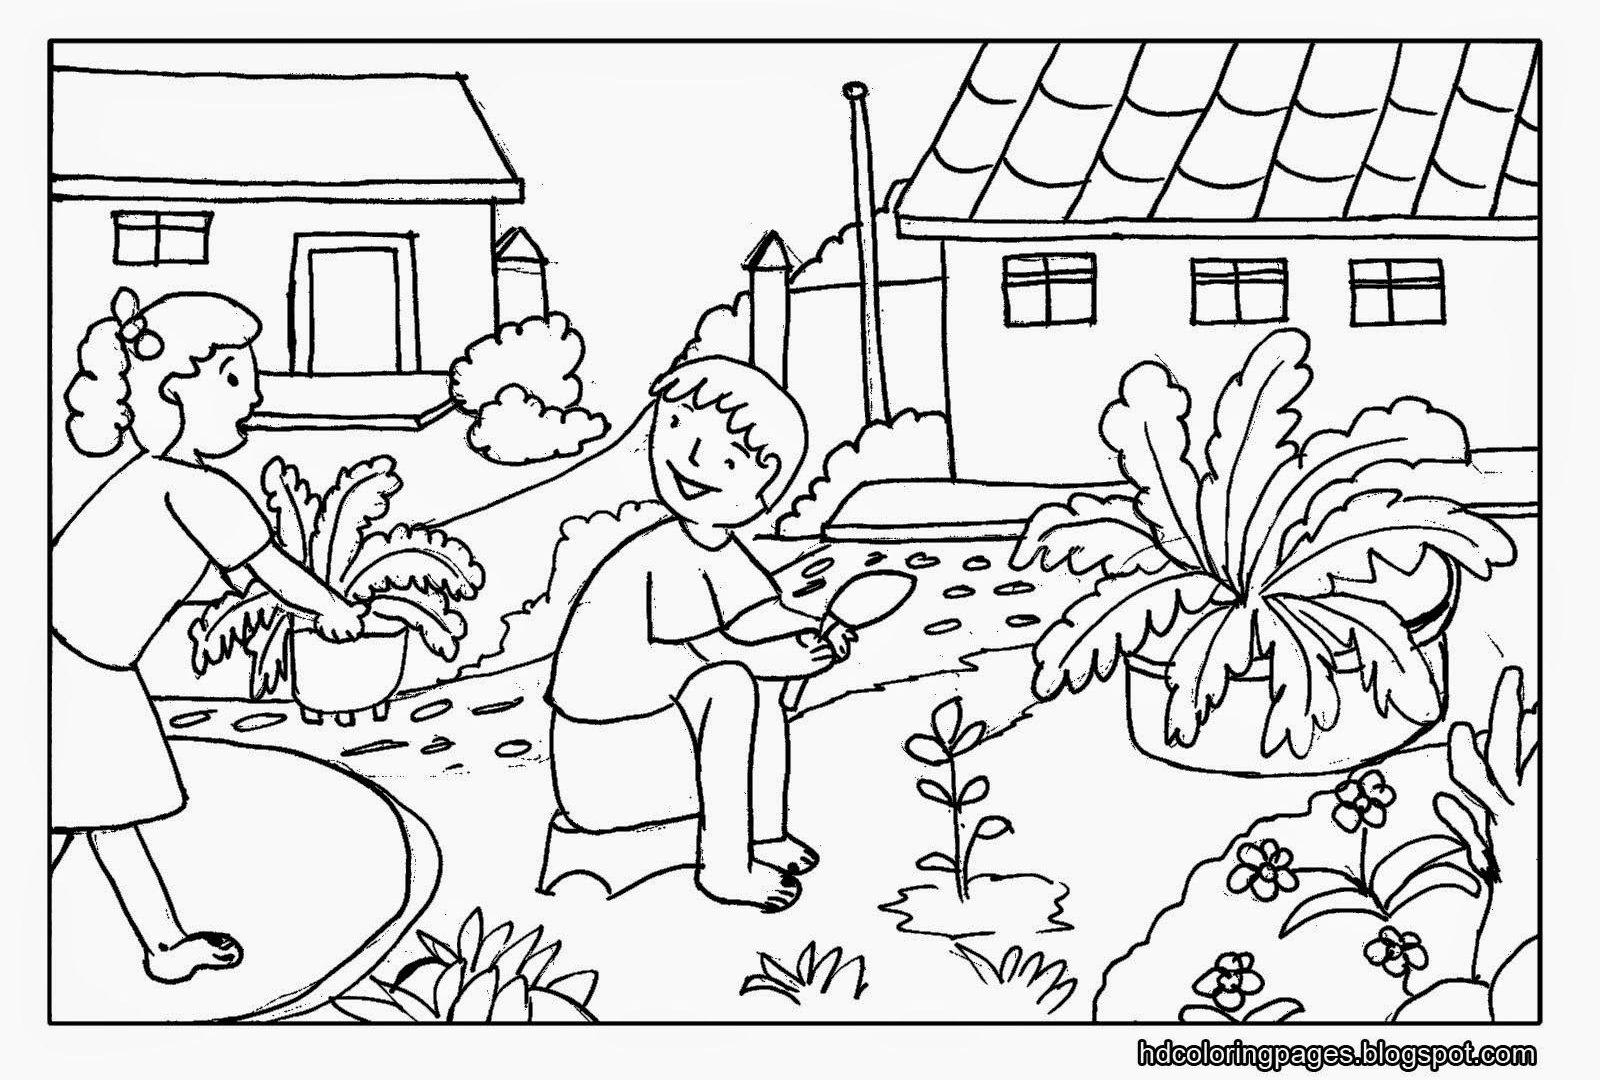 1600x1080 Smart Scenery Coloringges Nature Christmas Scenes Sheets Winter